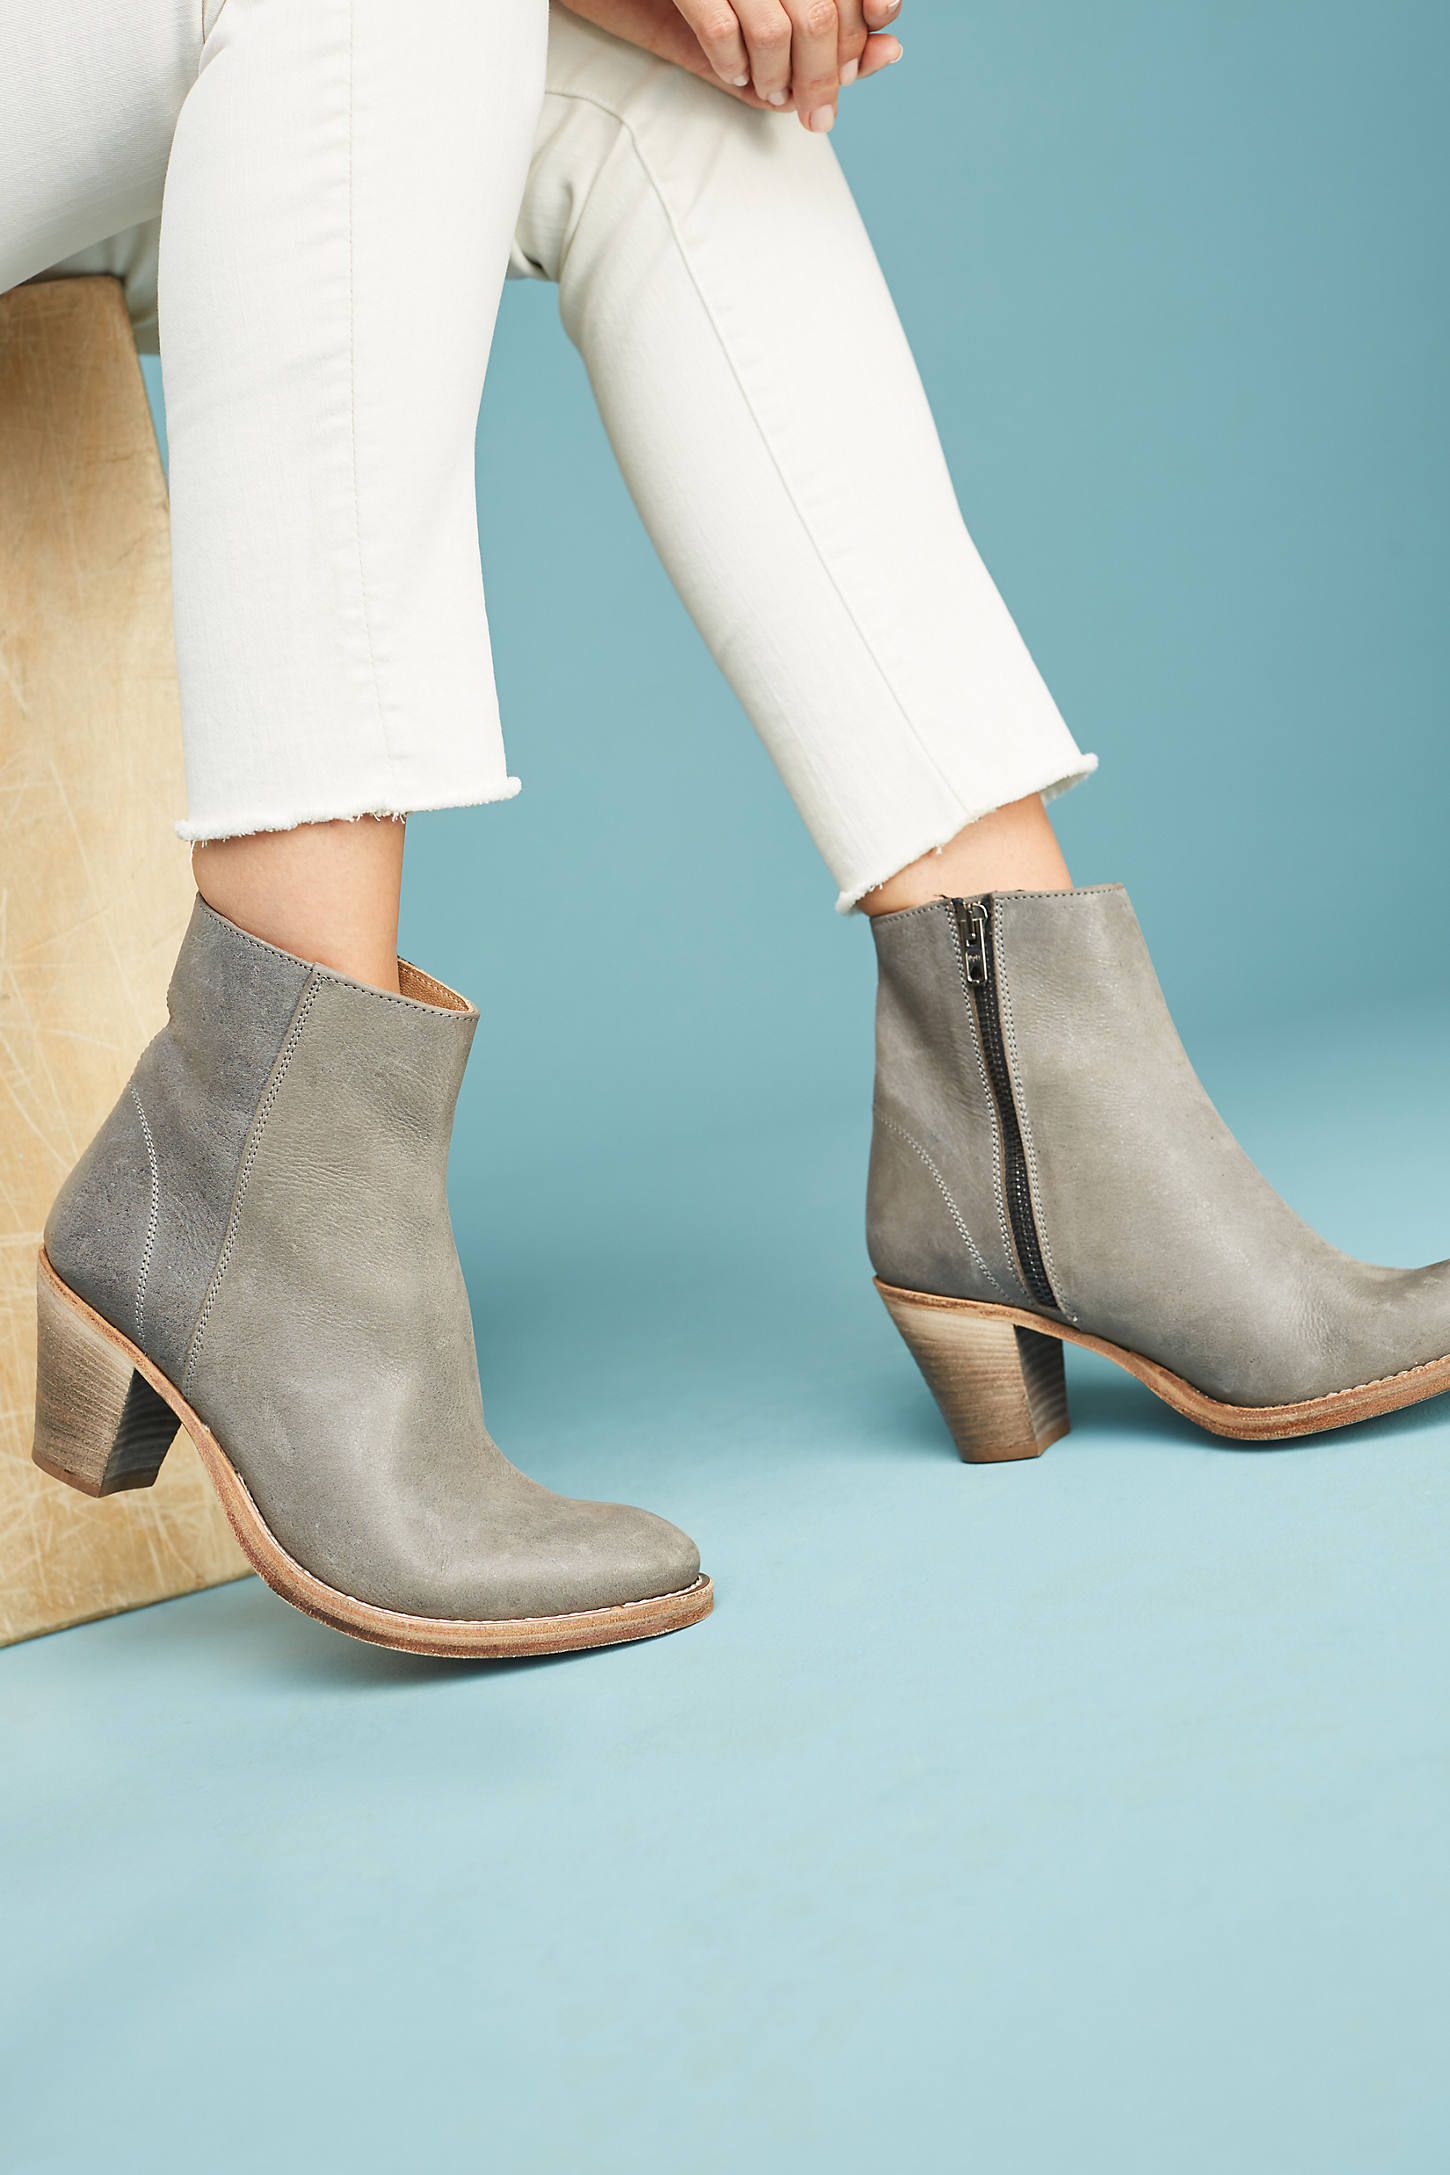 Peter Nappi Gabrielle Boots